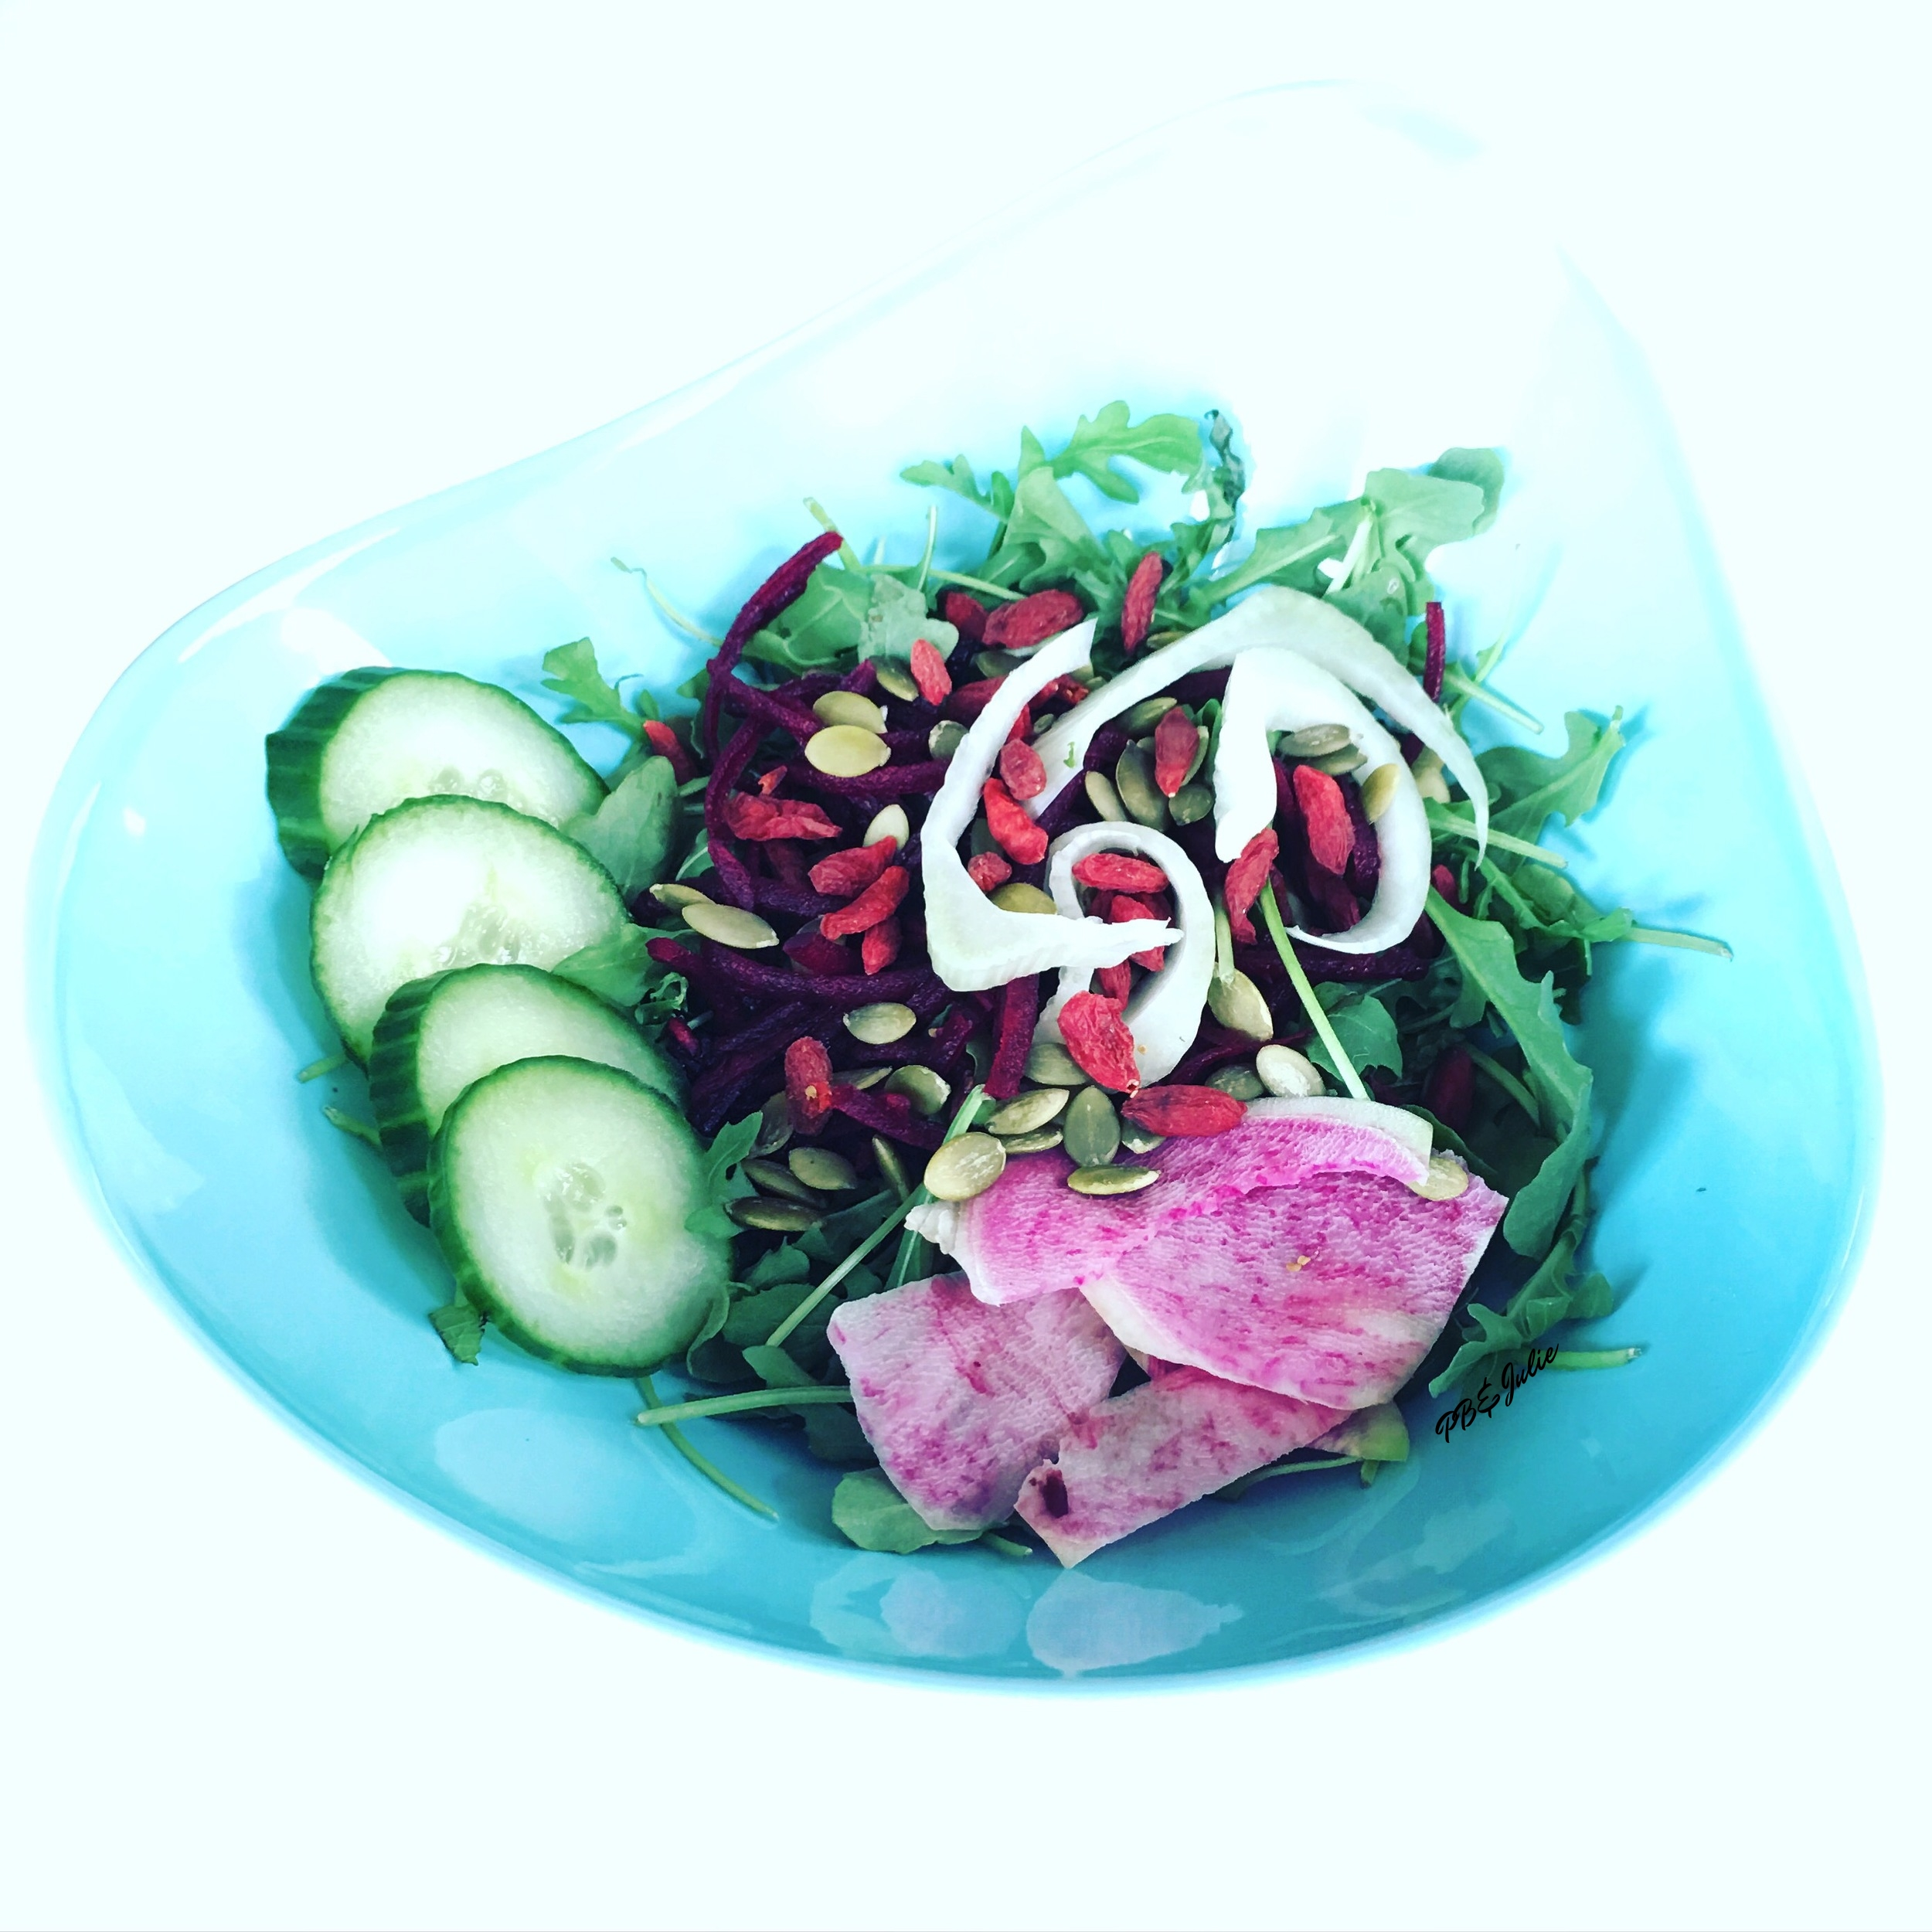 This detox salad features all of Spring's finest flavors in one big and beautiful bowl of health-promoting goodness.